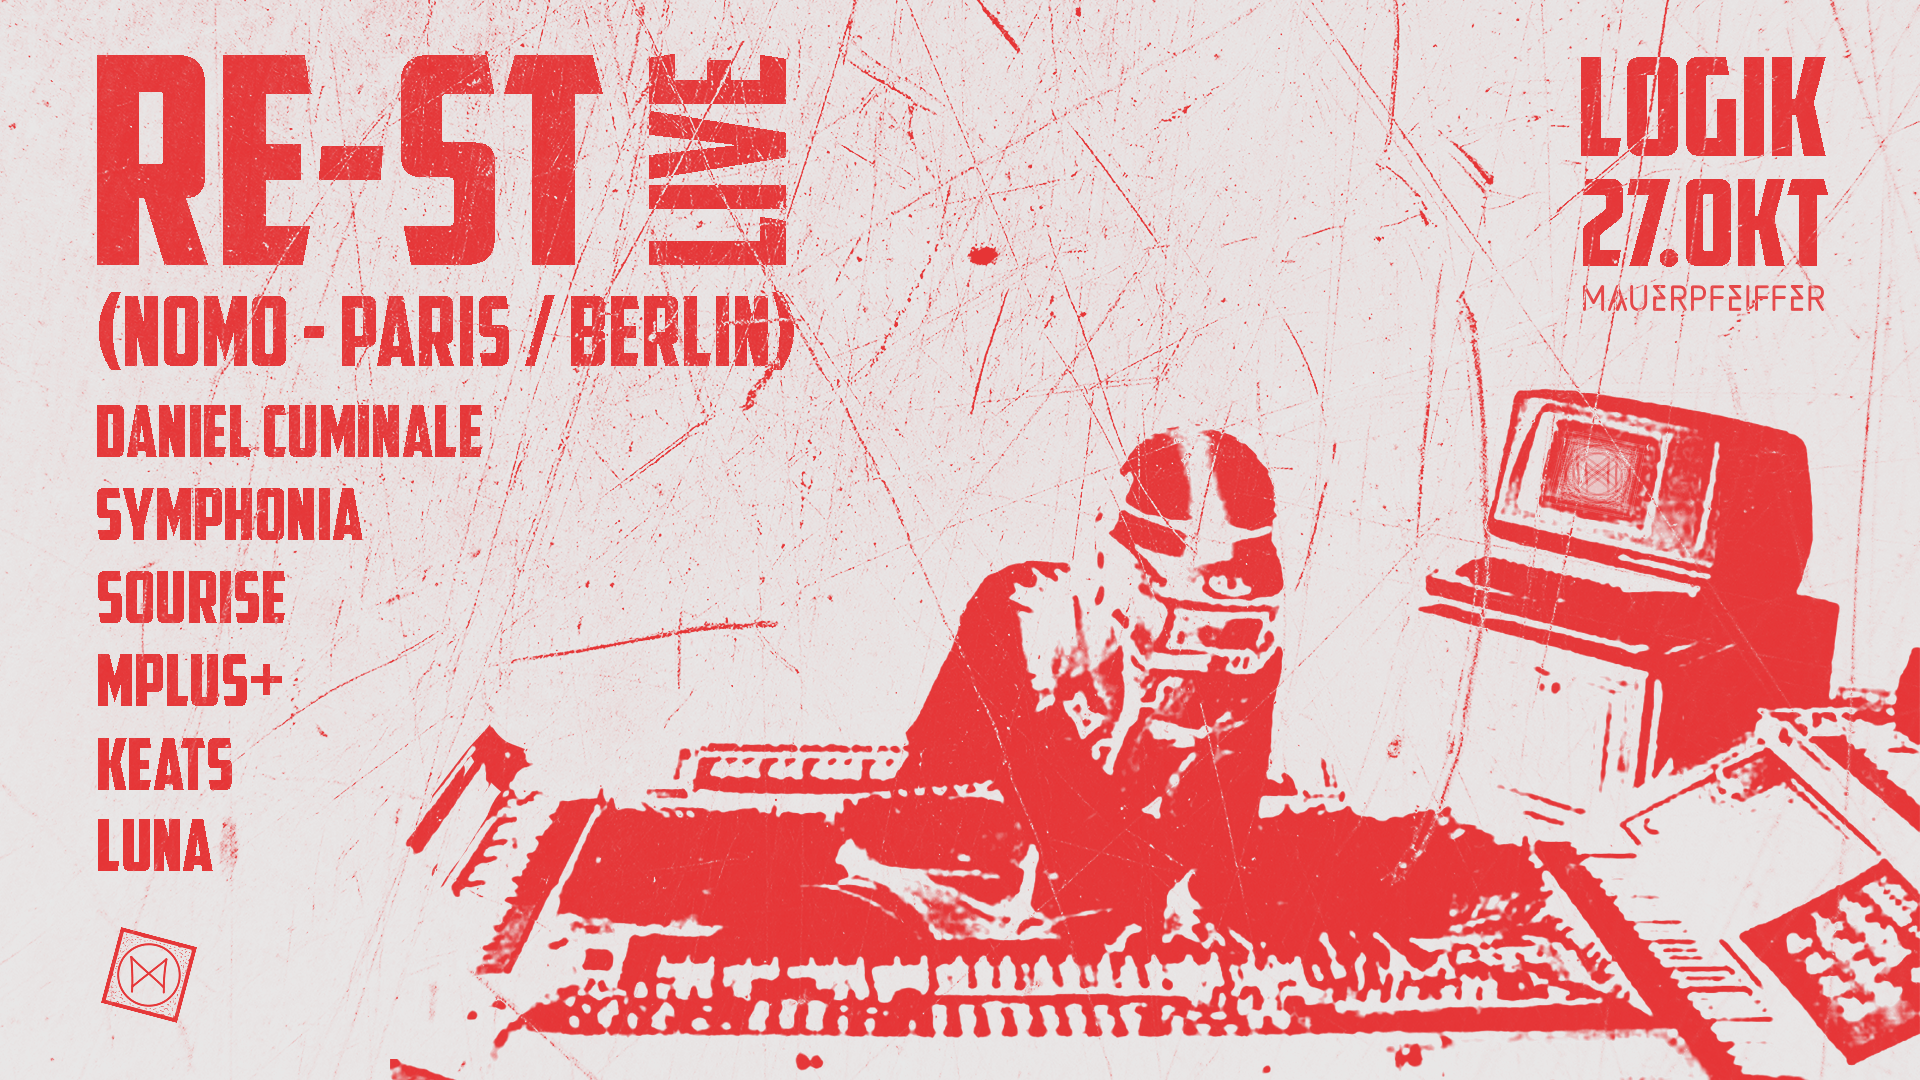 LOGIK w/ RE-ST live! (NOMO - Paris / Berlin)